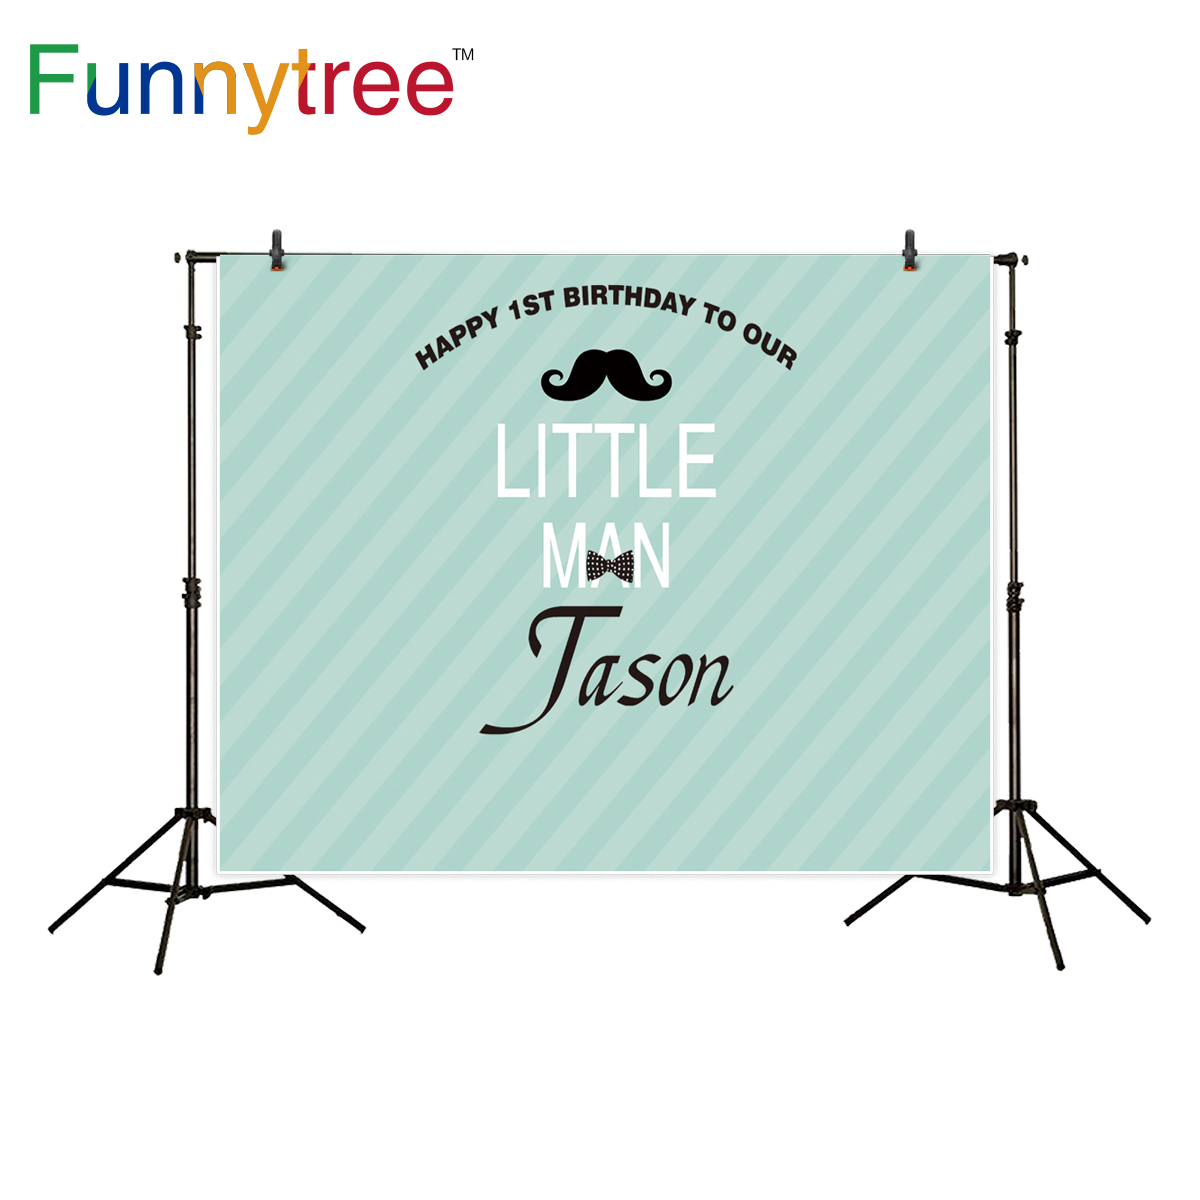 Funnytree photography background little man theme birthday party moustache backdrop photocall photo studio printed capisco super city photography backdrop theme building studio super hero photo background prop for photography party